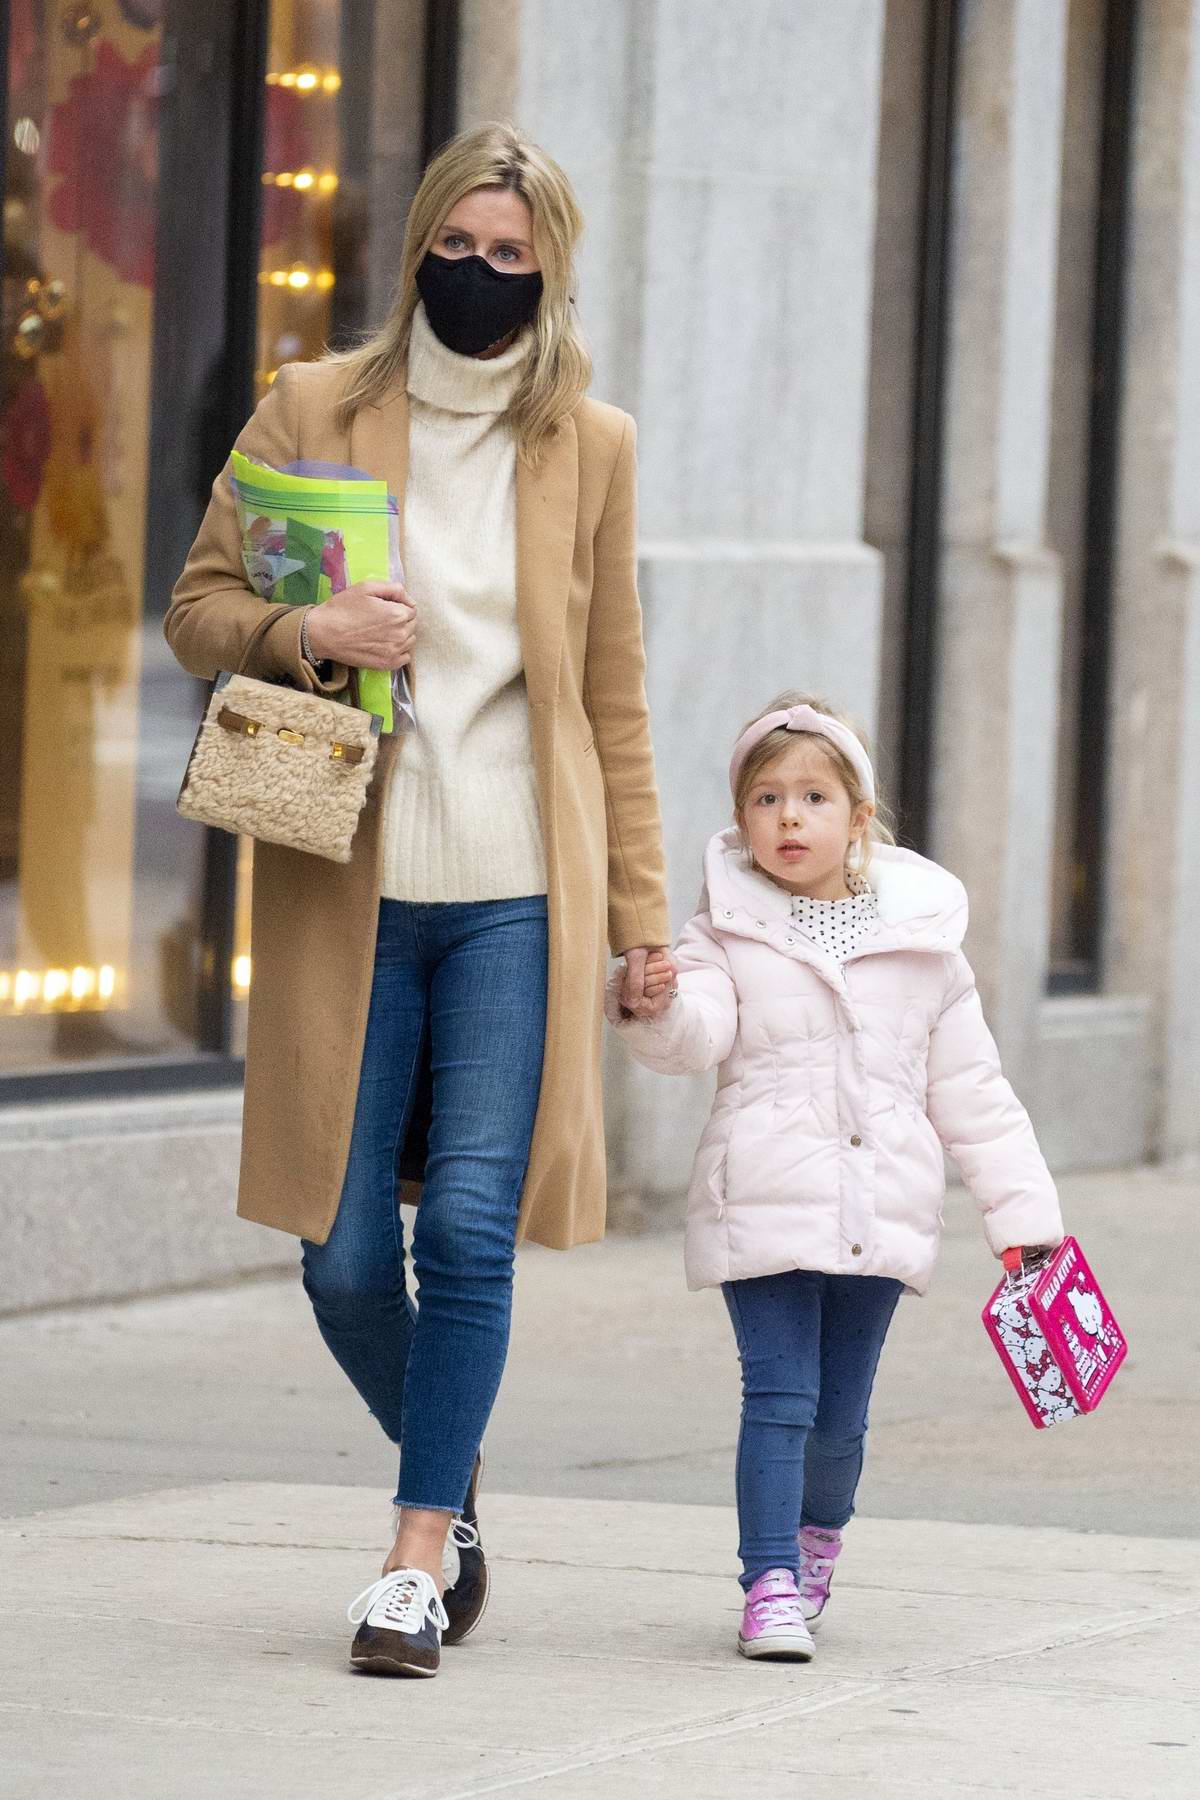 Nicky Hilton keeps it stylish as she steps out for a walk with her daughter in New York City